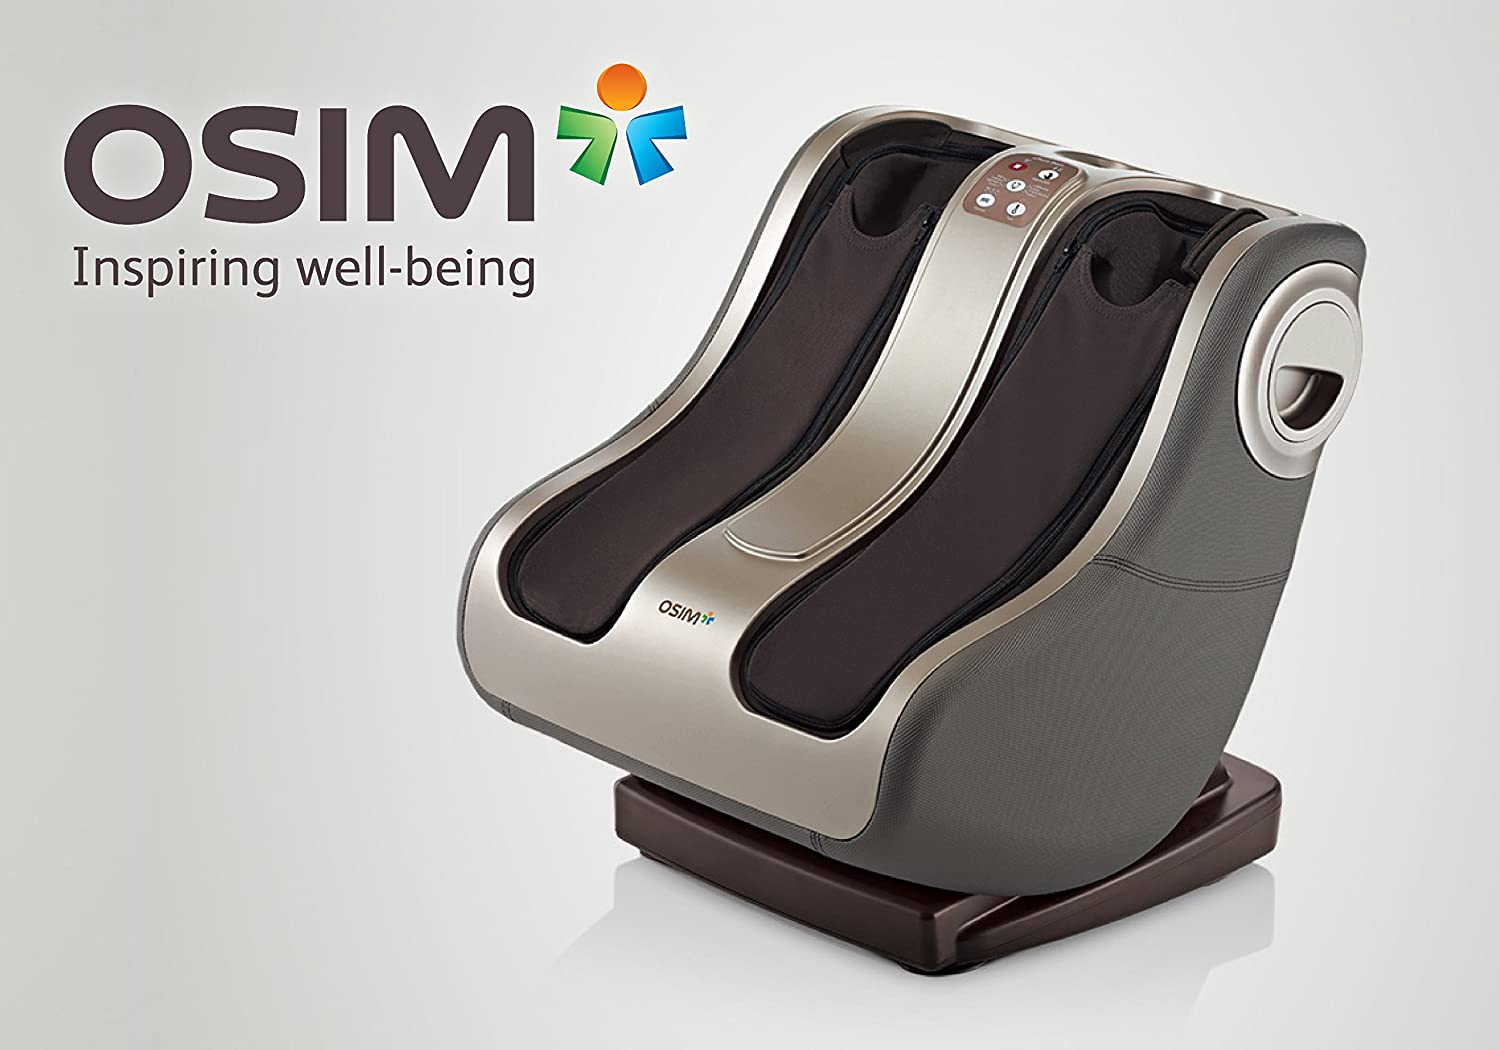 OSIM uPhoria Warm 5-in-1 Massager